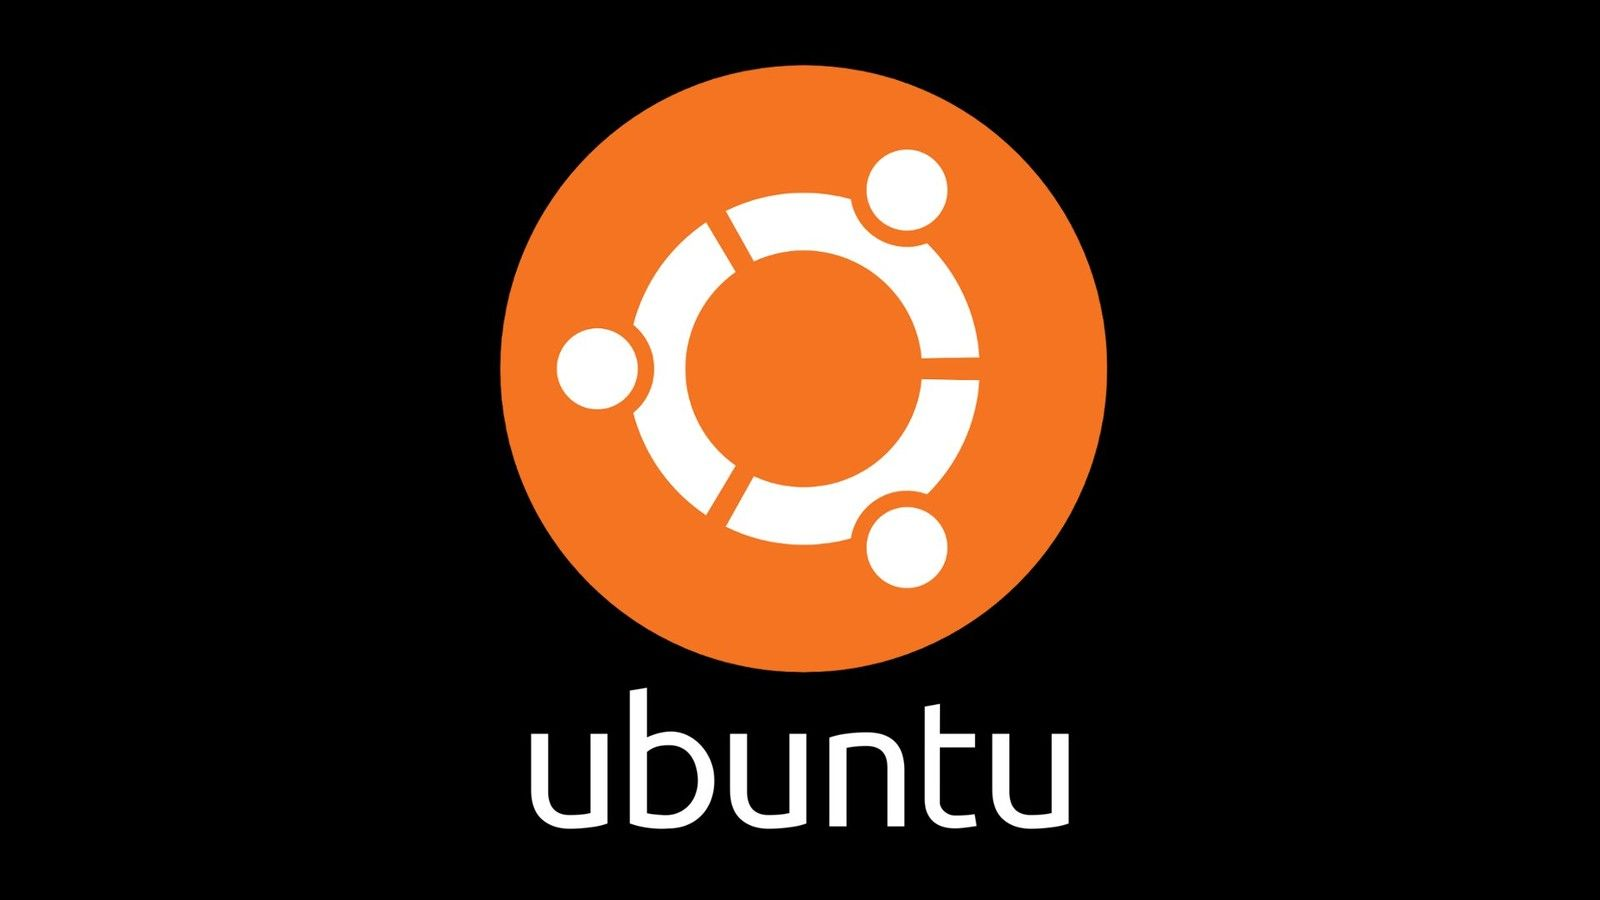 Ubuntu Logo - You'll soon be able to run Ubuntu on Windows 10 | Windows Central